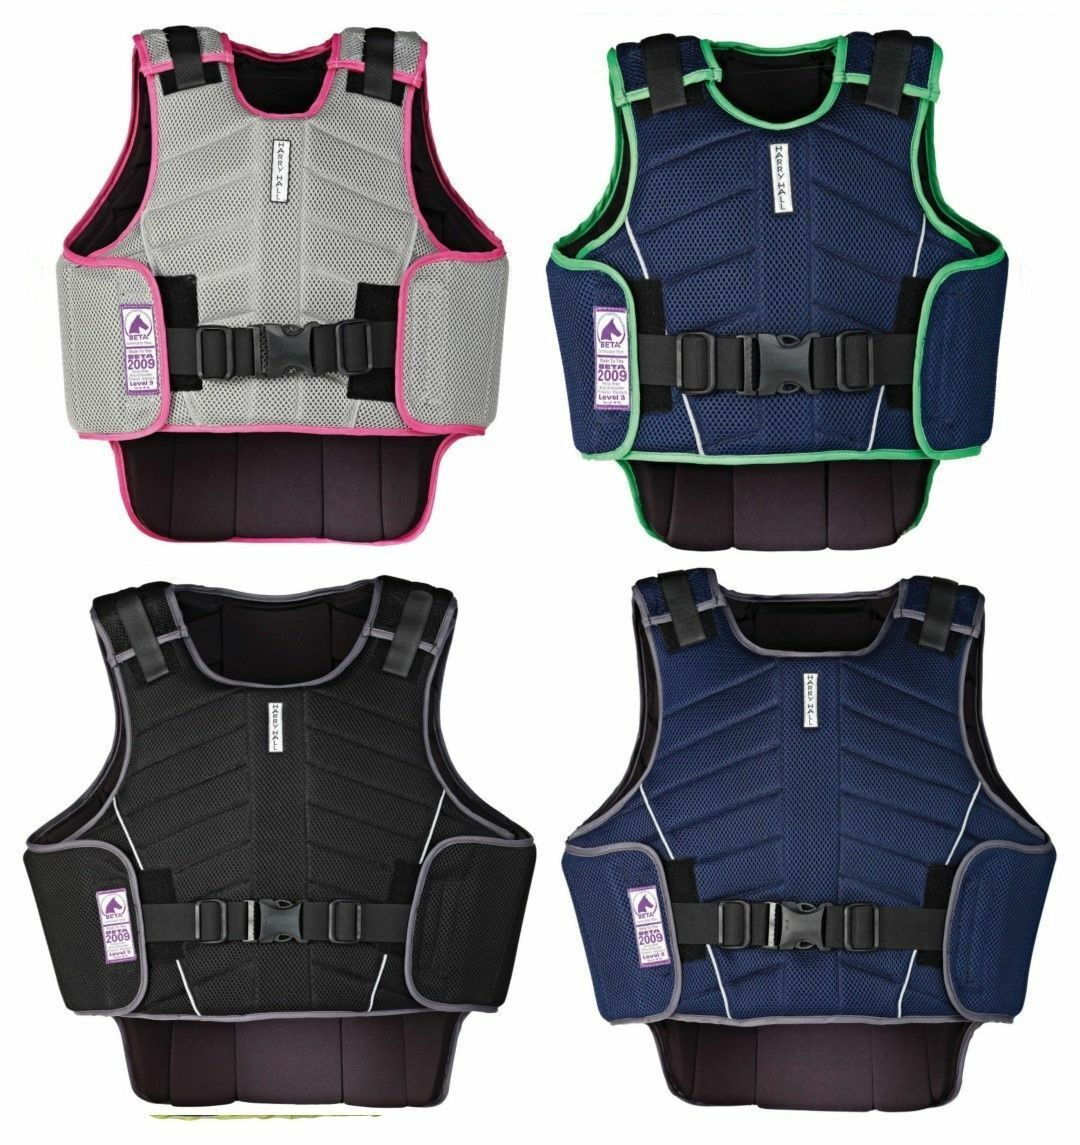 Harry Hall Zeus Body Protector beta beta Protector level 3 childs horse riding protector SALE 3eee3c